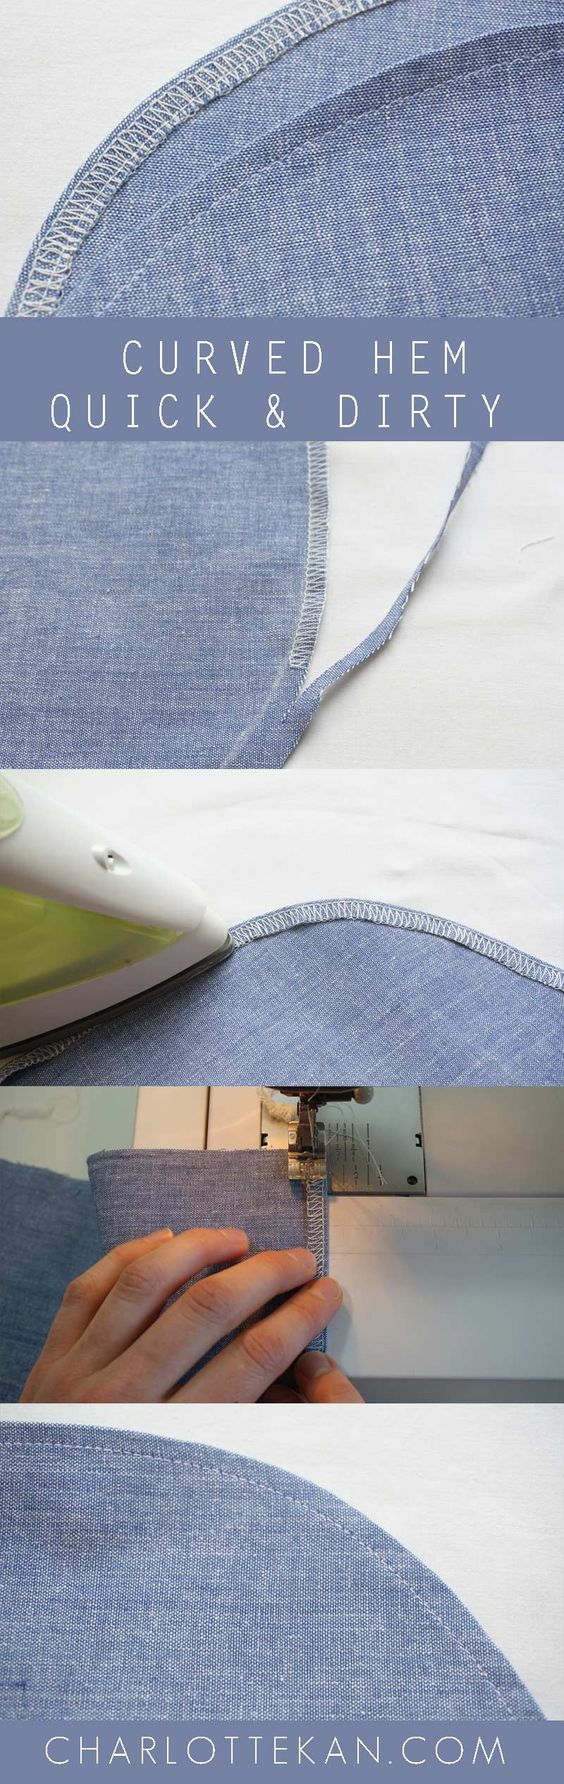 How to sew a curved hem? Well it depends! I've made a few videos explaining different techniques for sewing around curves Sew a curved hem using a stitched guideline